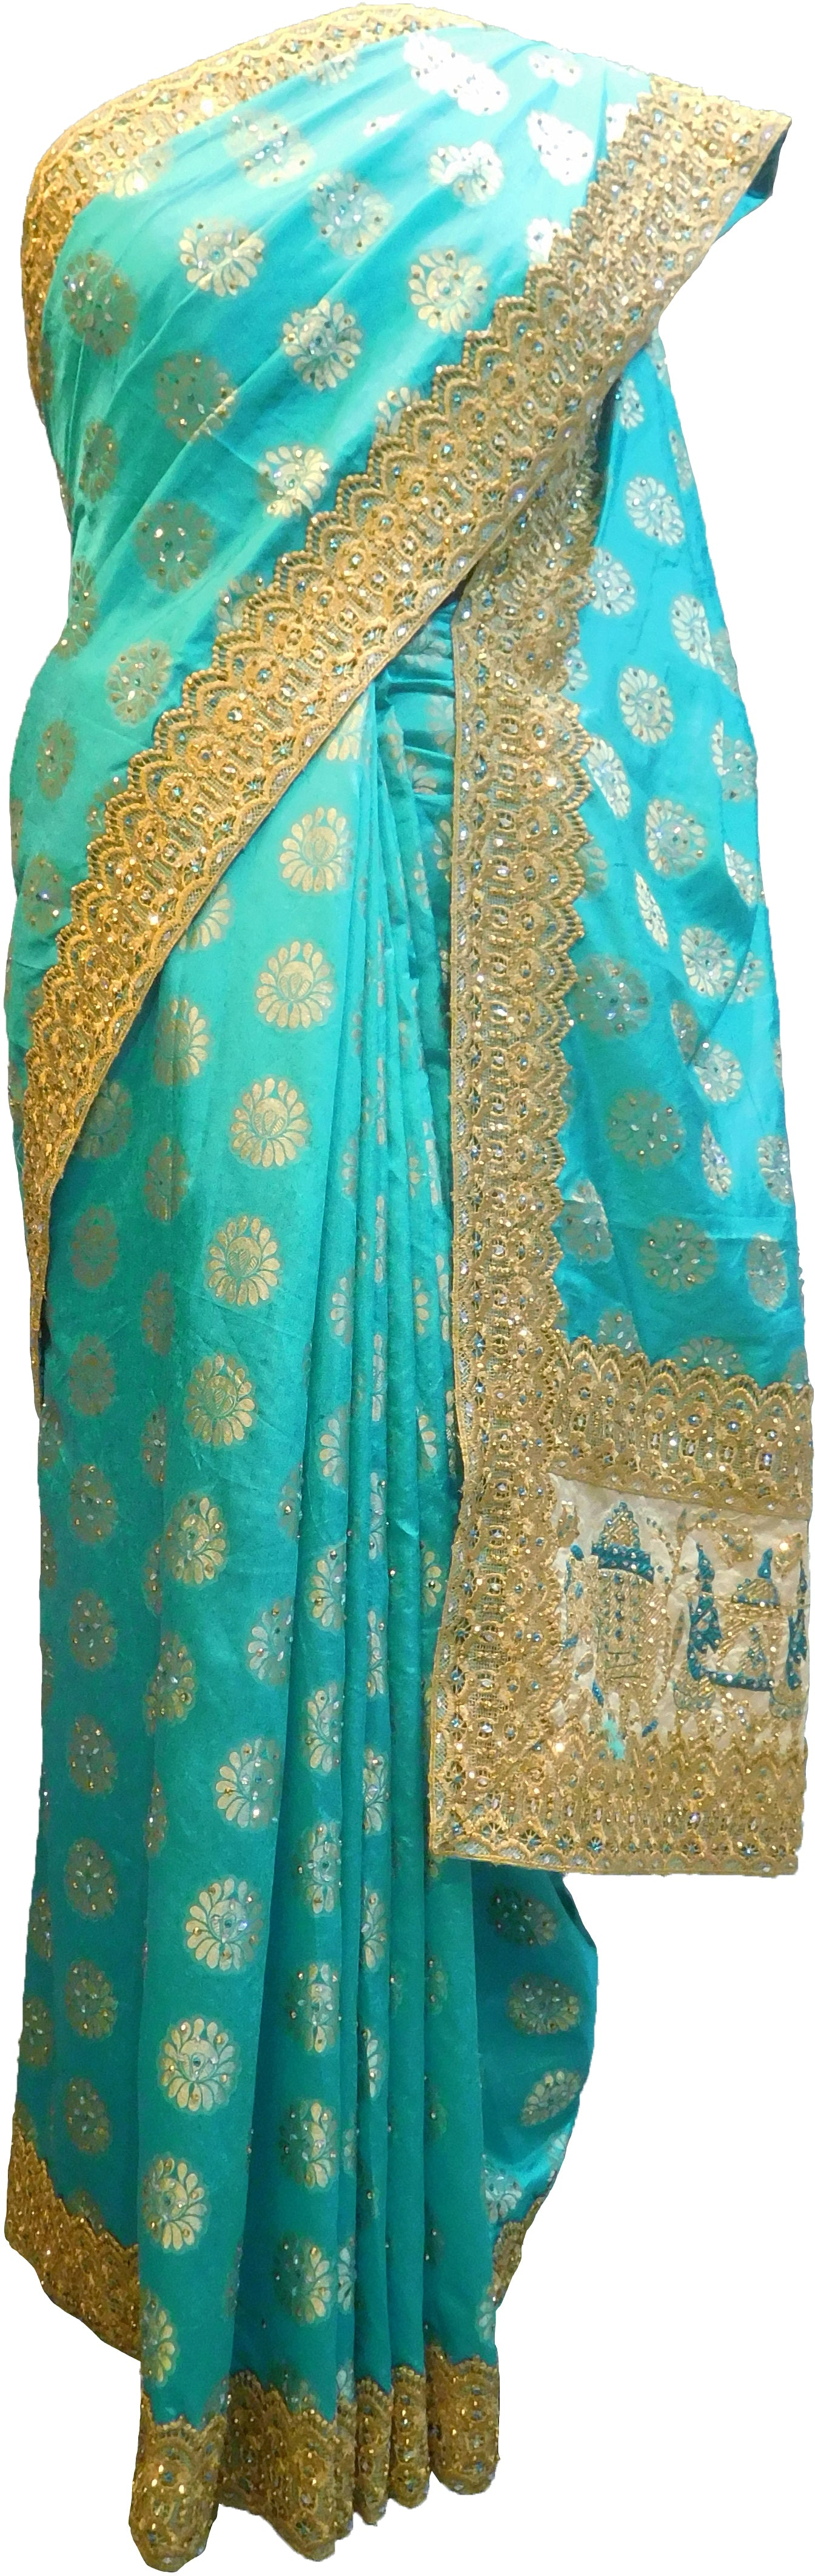 SMSAREE Turquoise Designer Wedding Partywear Silk Stone Thread & Zari Hand Embroidery Work Bridal Saree Sari With Blouse Piece F398